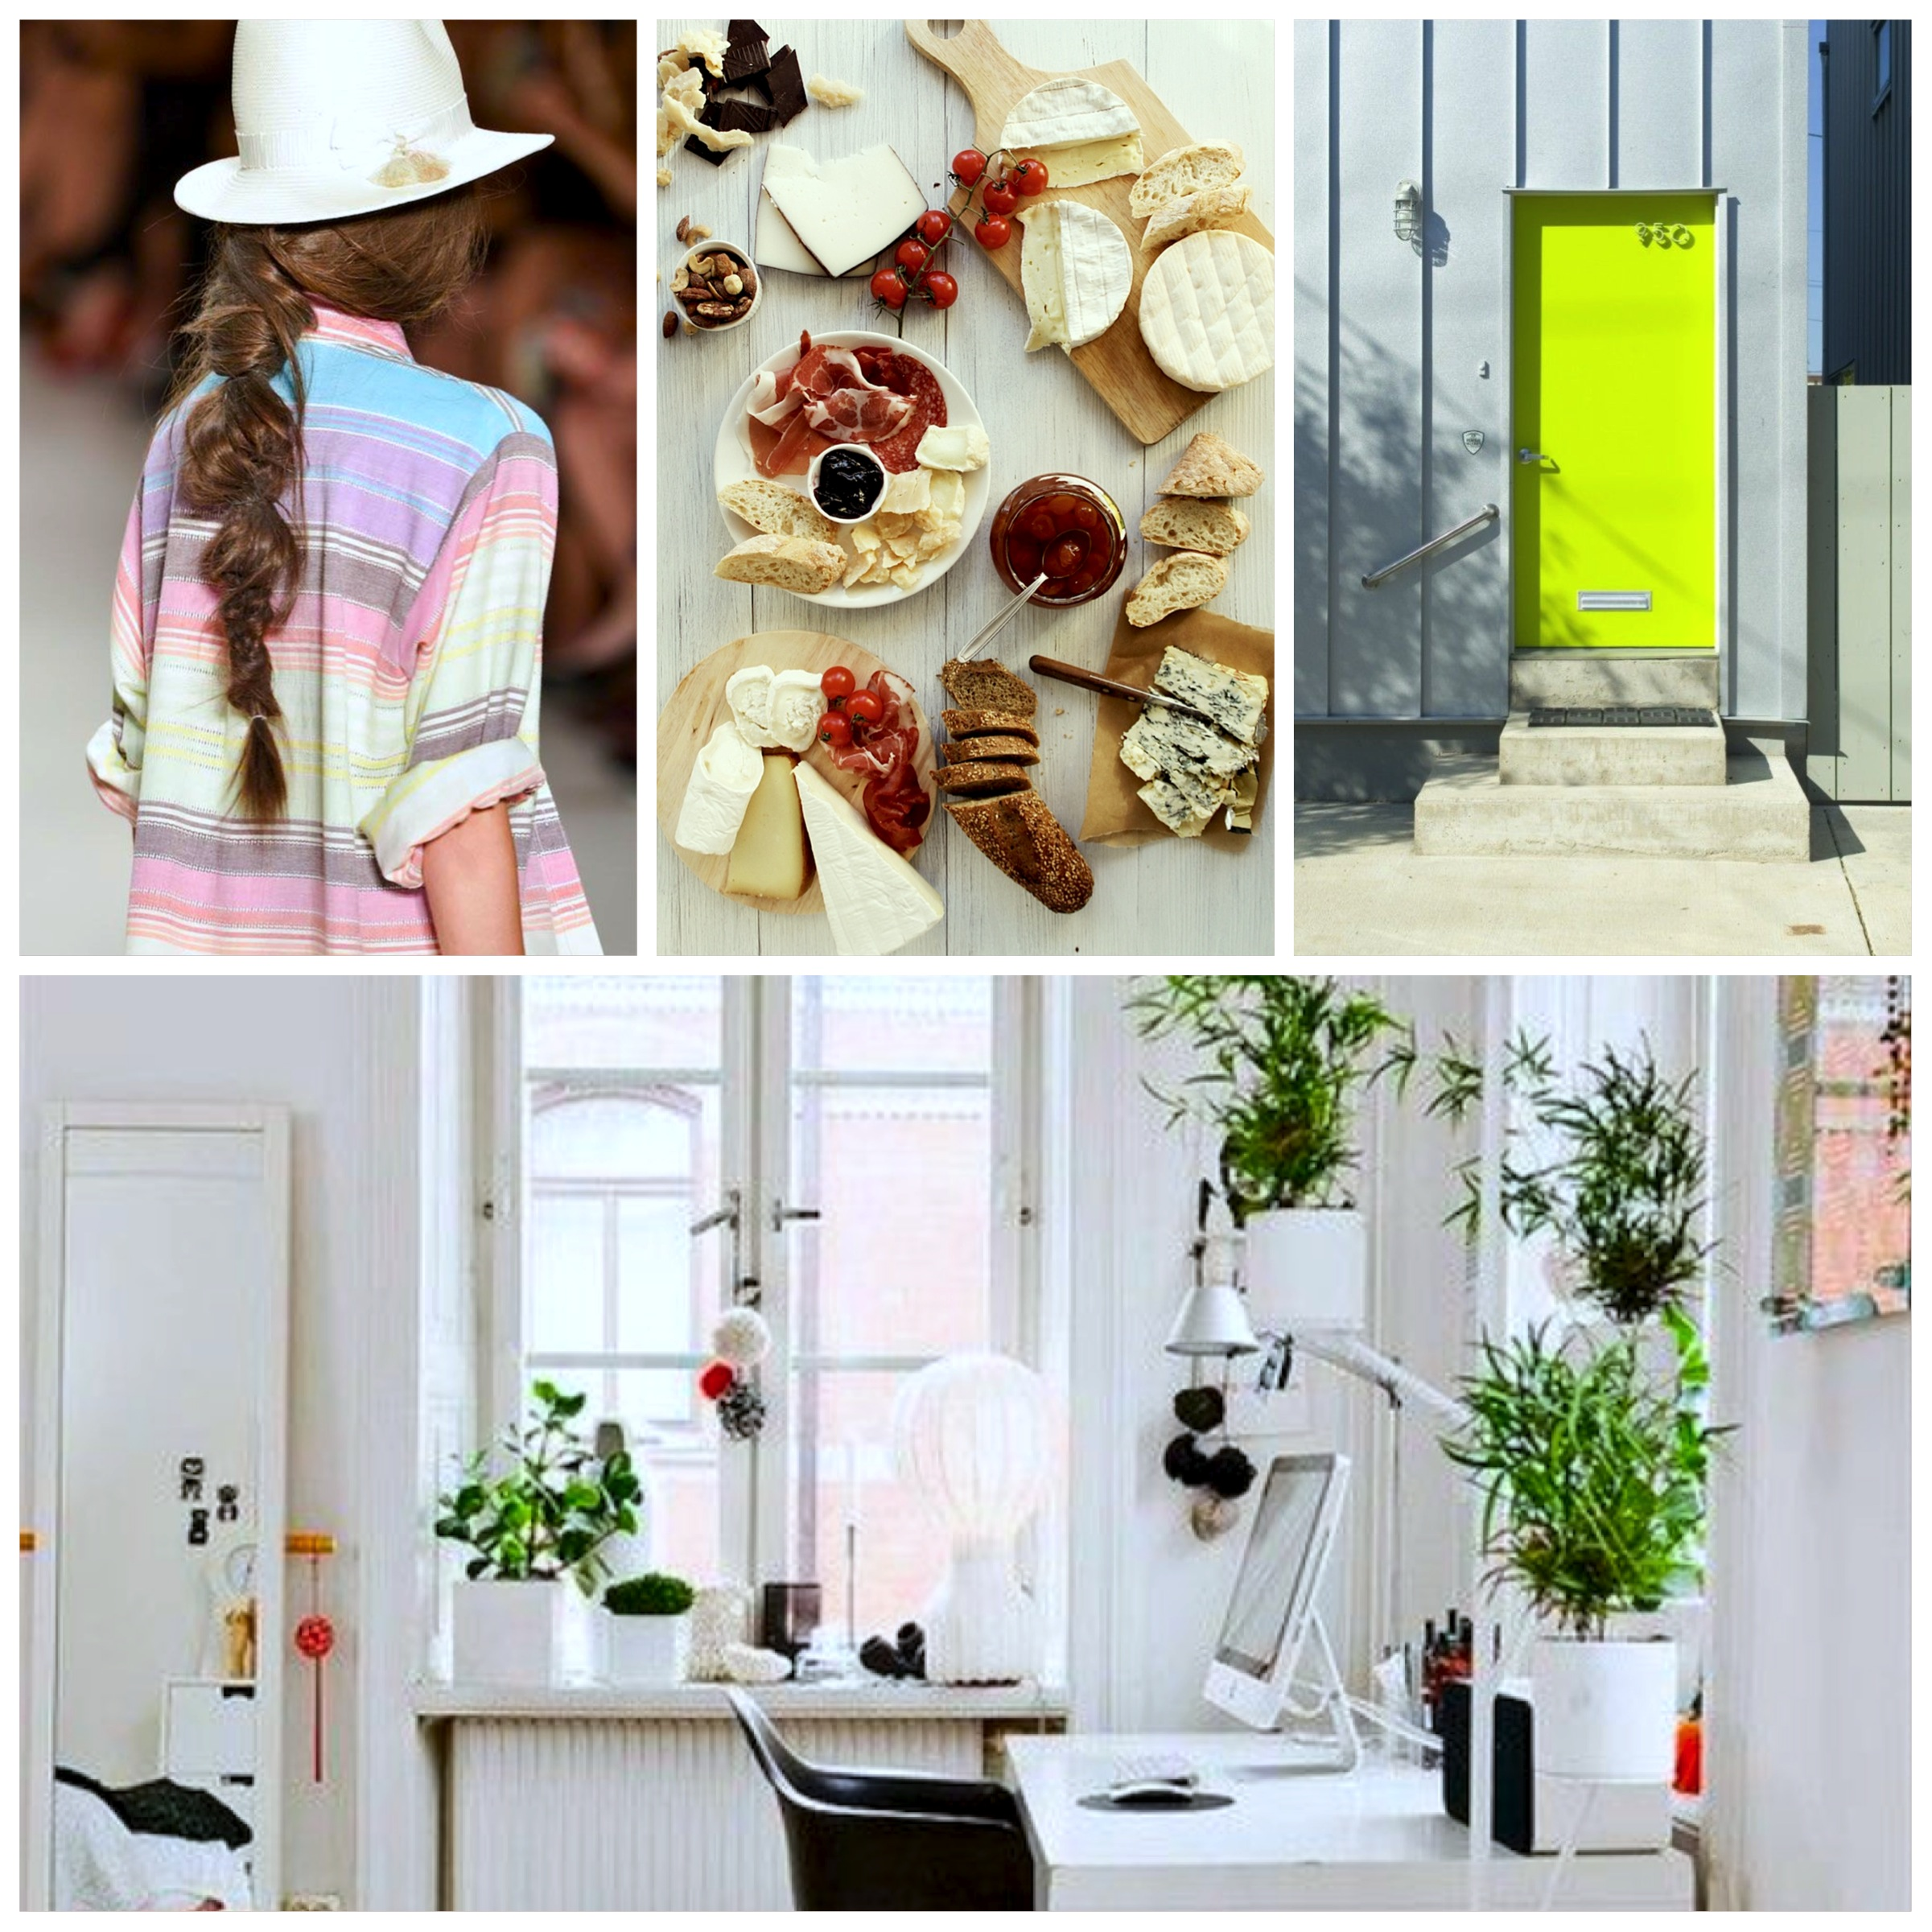 blog inspiration art design pinterest hair food workspace studio cool neon door hair fishtail